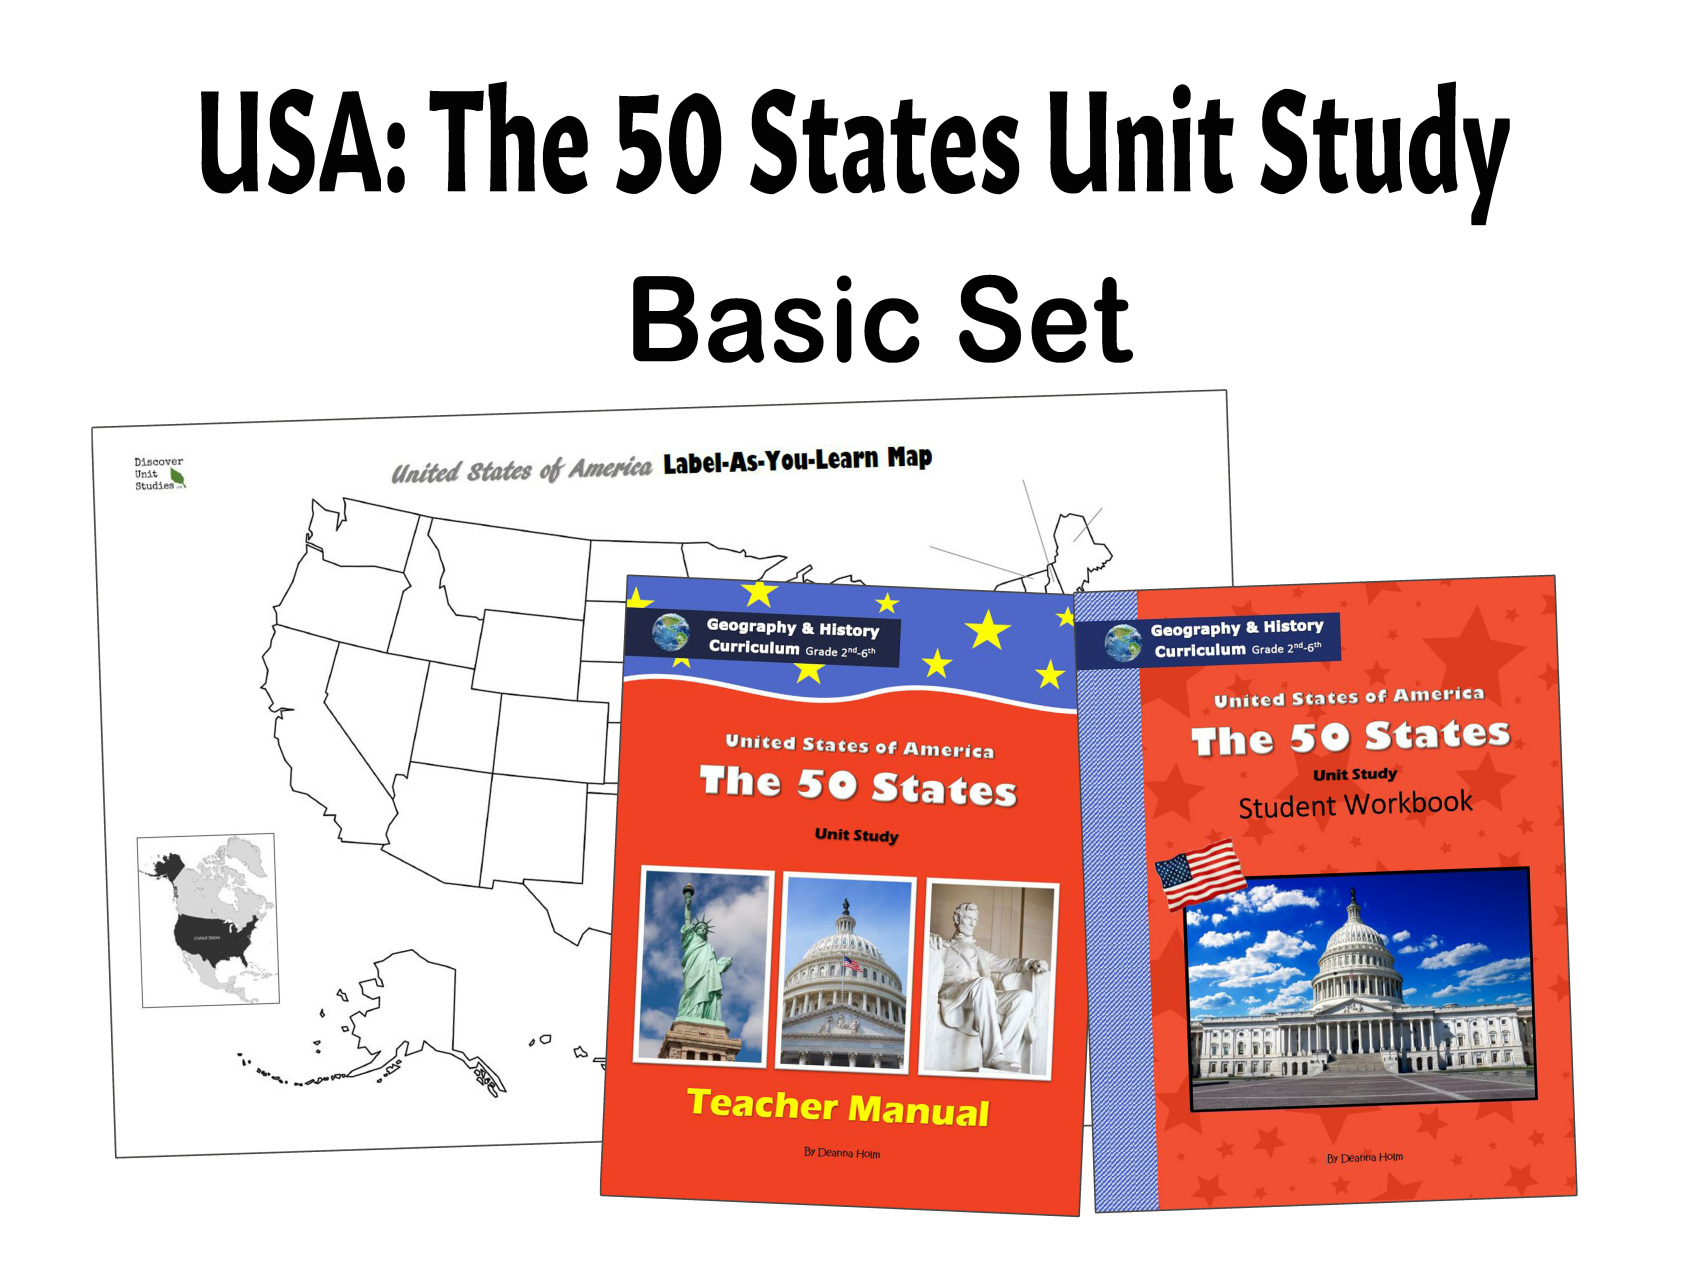 USA: The 50 States Geography & History Curriculum Games To Memorize The States on learning 50 states, outline 50 states, list 50 states, sing 50 states, match 50 states, name 50 states, show 50 states, practice 50 states, identify 50 states, study 50 states, label 50 states, order 50 states,